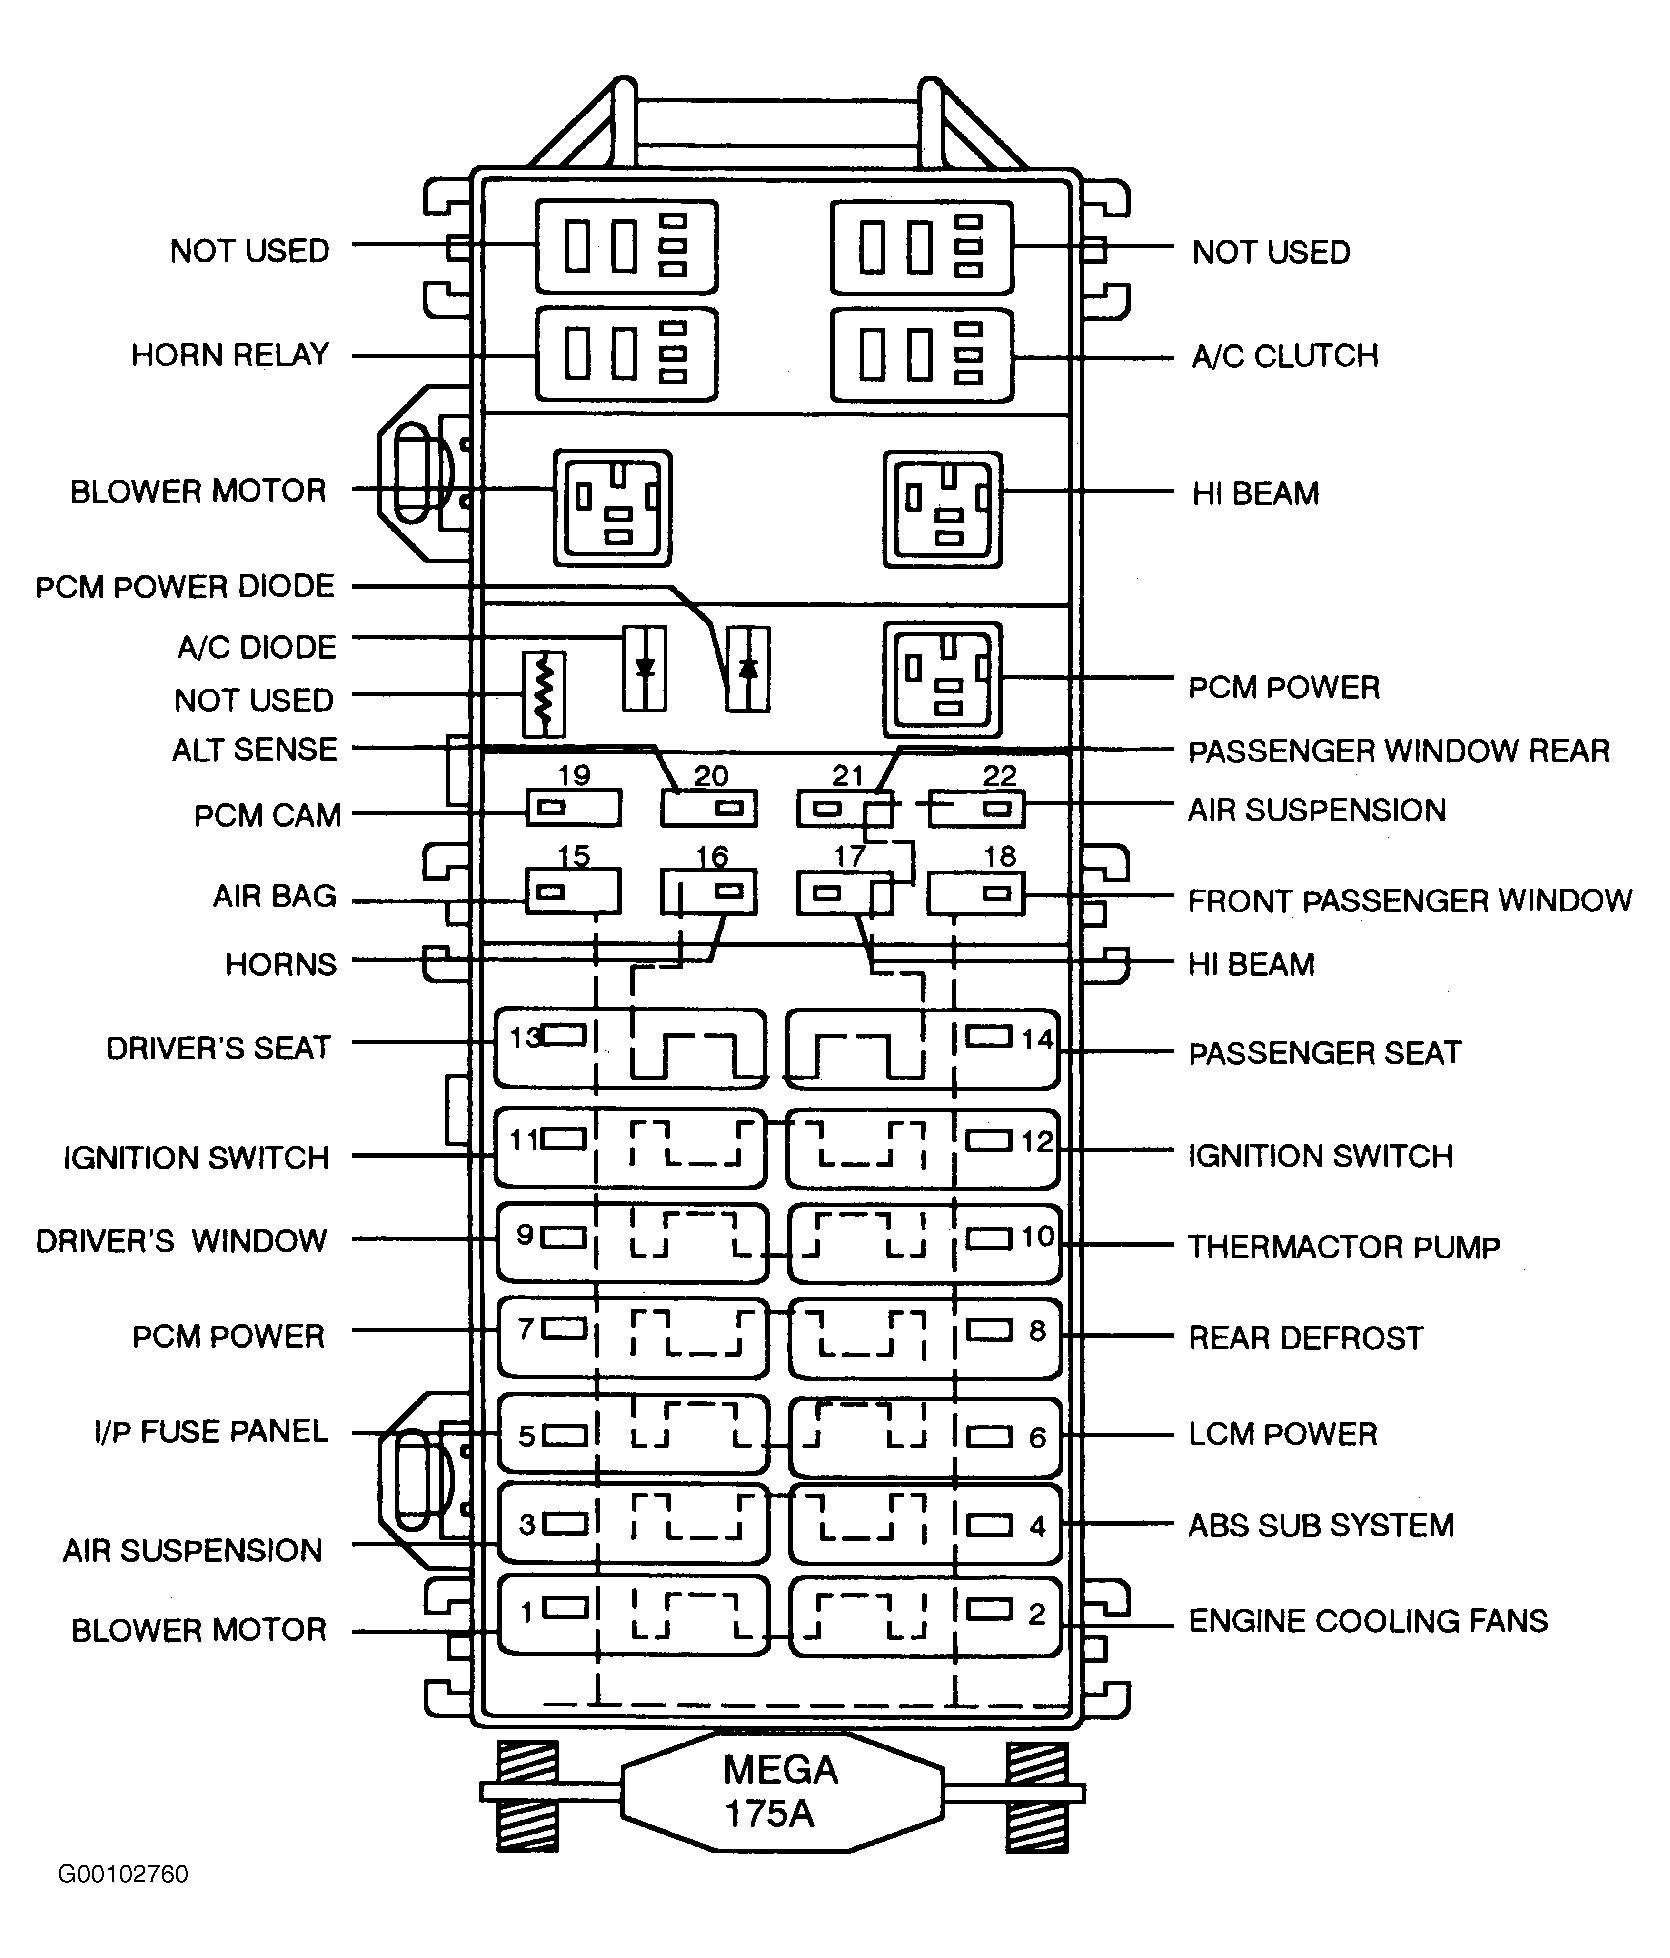 Diagram Of Under the Hood Of A Car Car Fuse Box Diagram Simple Guide About Wiring Diagram Of Diagram Of Under the Hood Of A Car